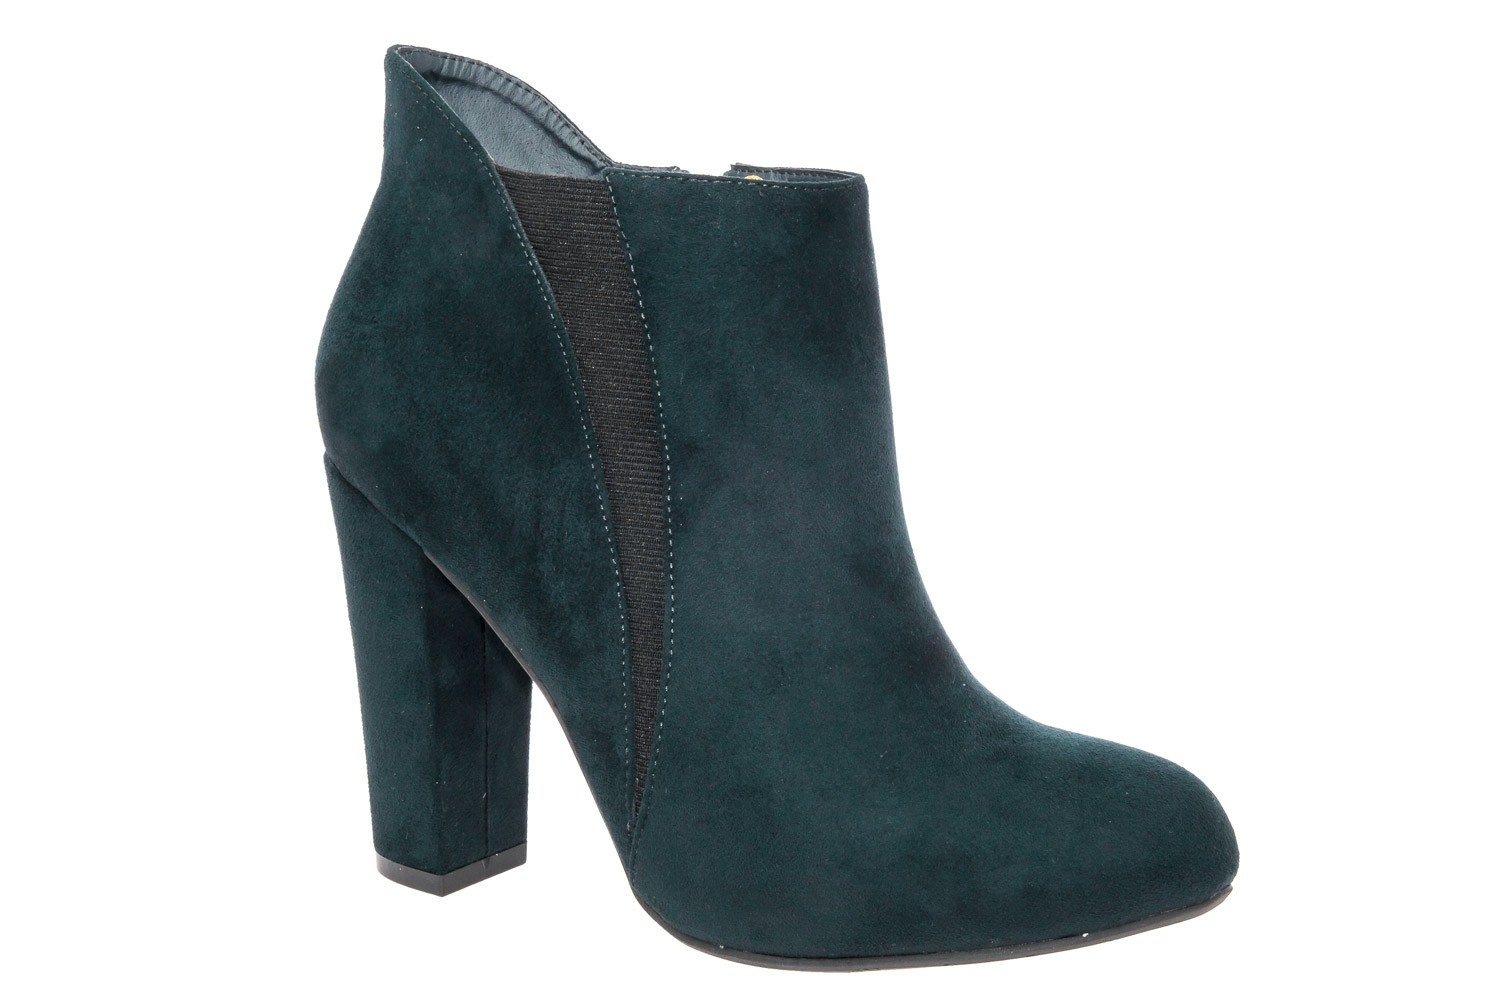 Navy ankle boots by shoetastic